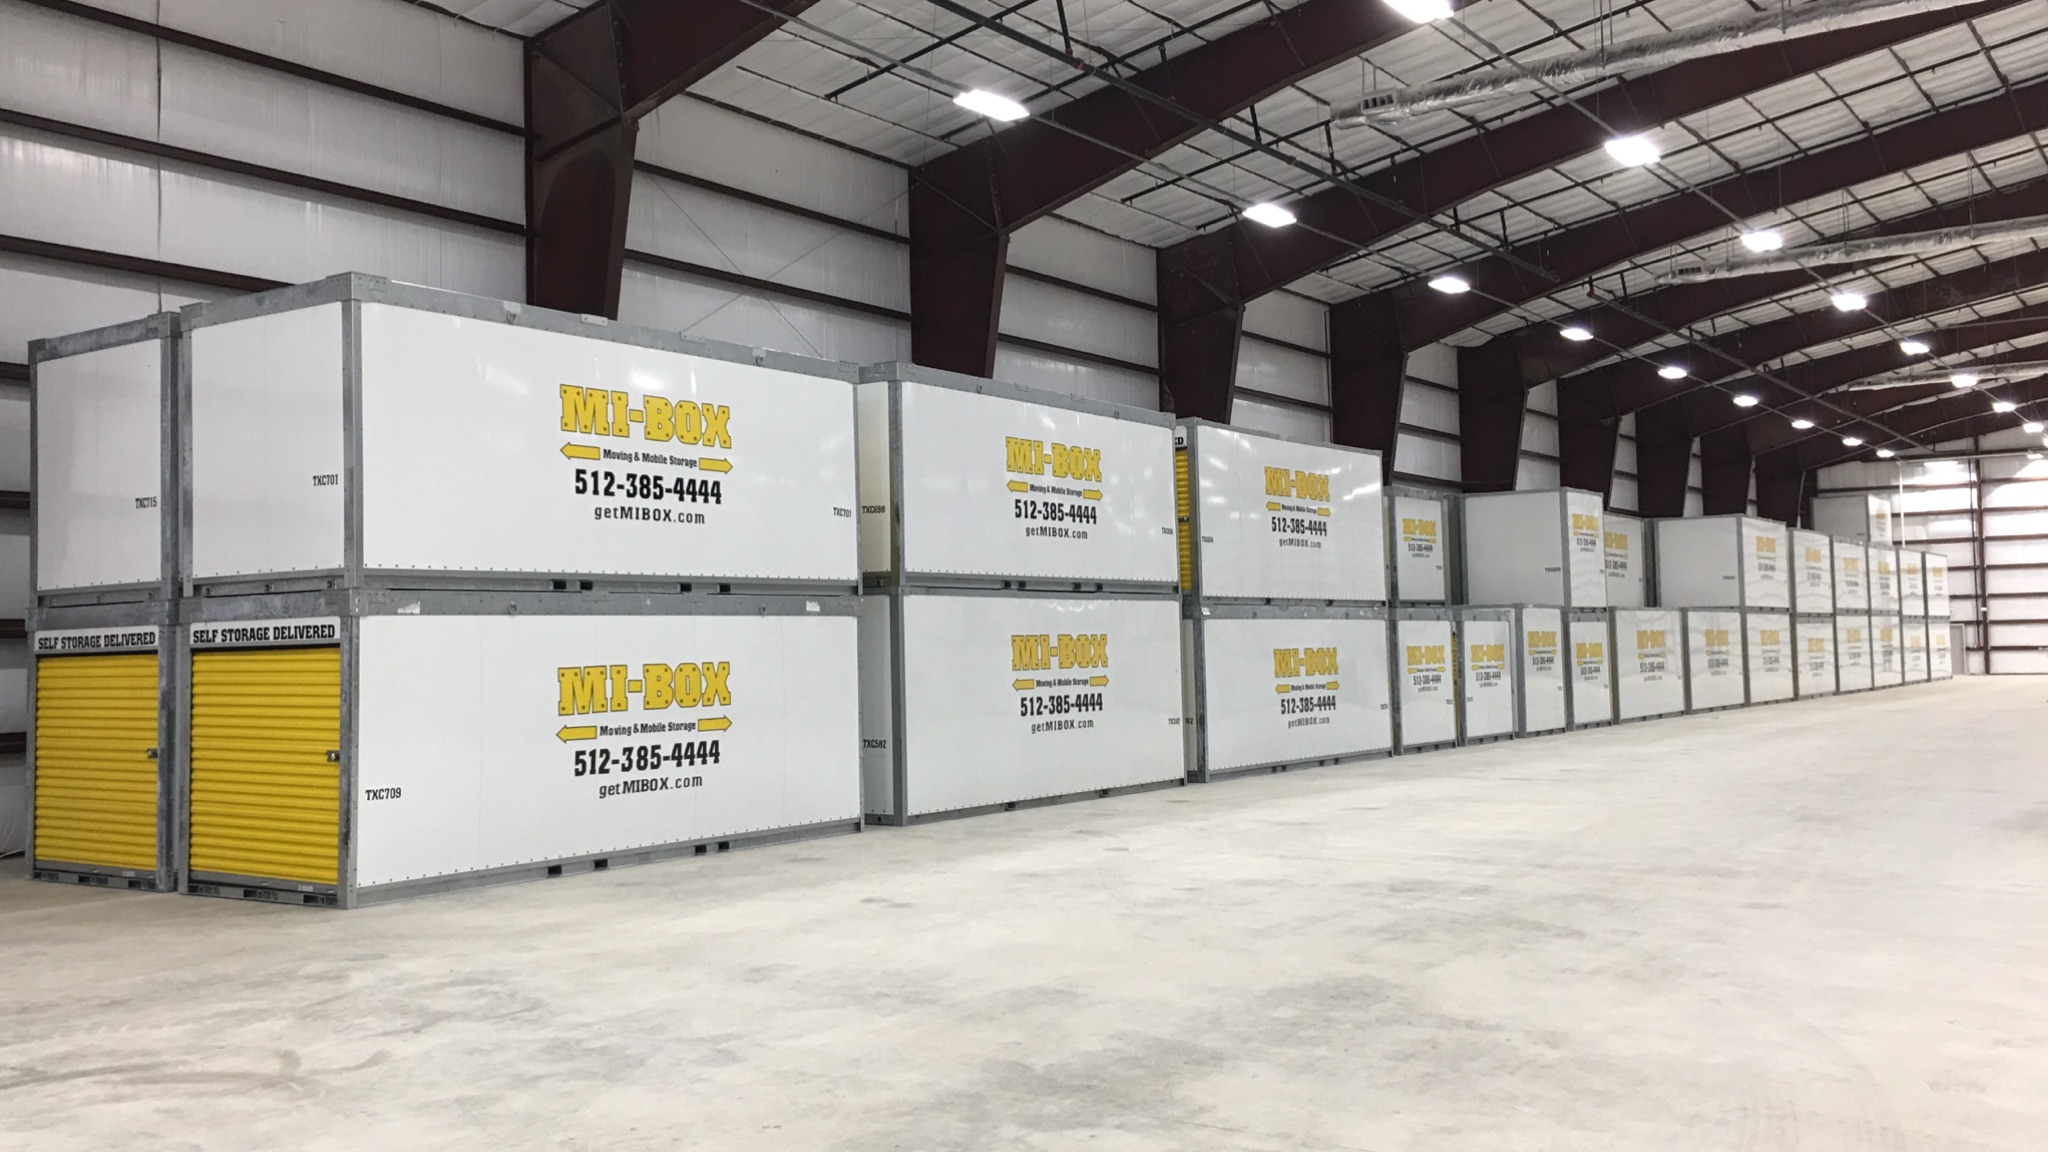 MI-BOX Moving & Storage Centers